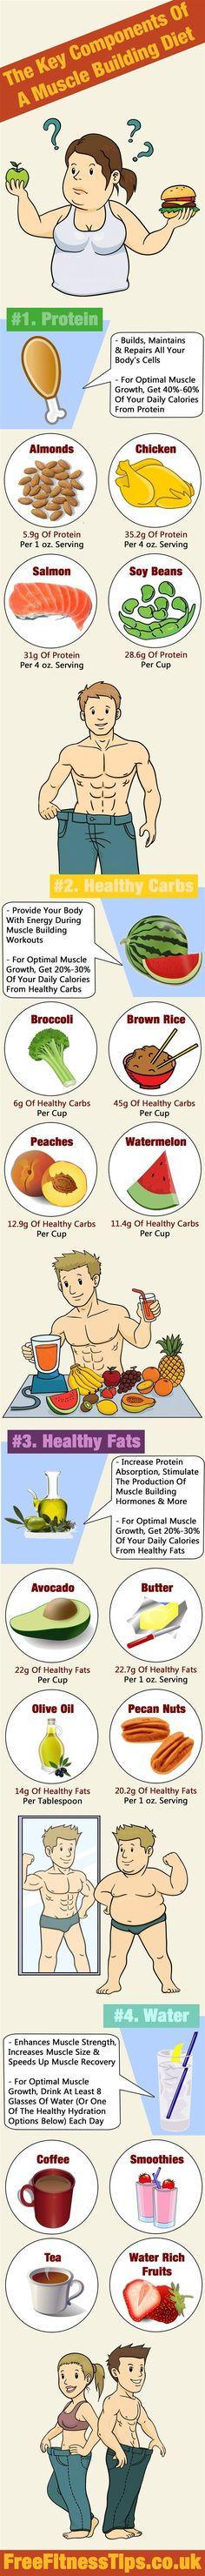 The Key Components Of A Muscle Building Diet